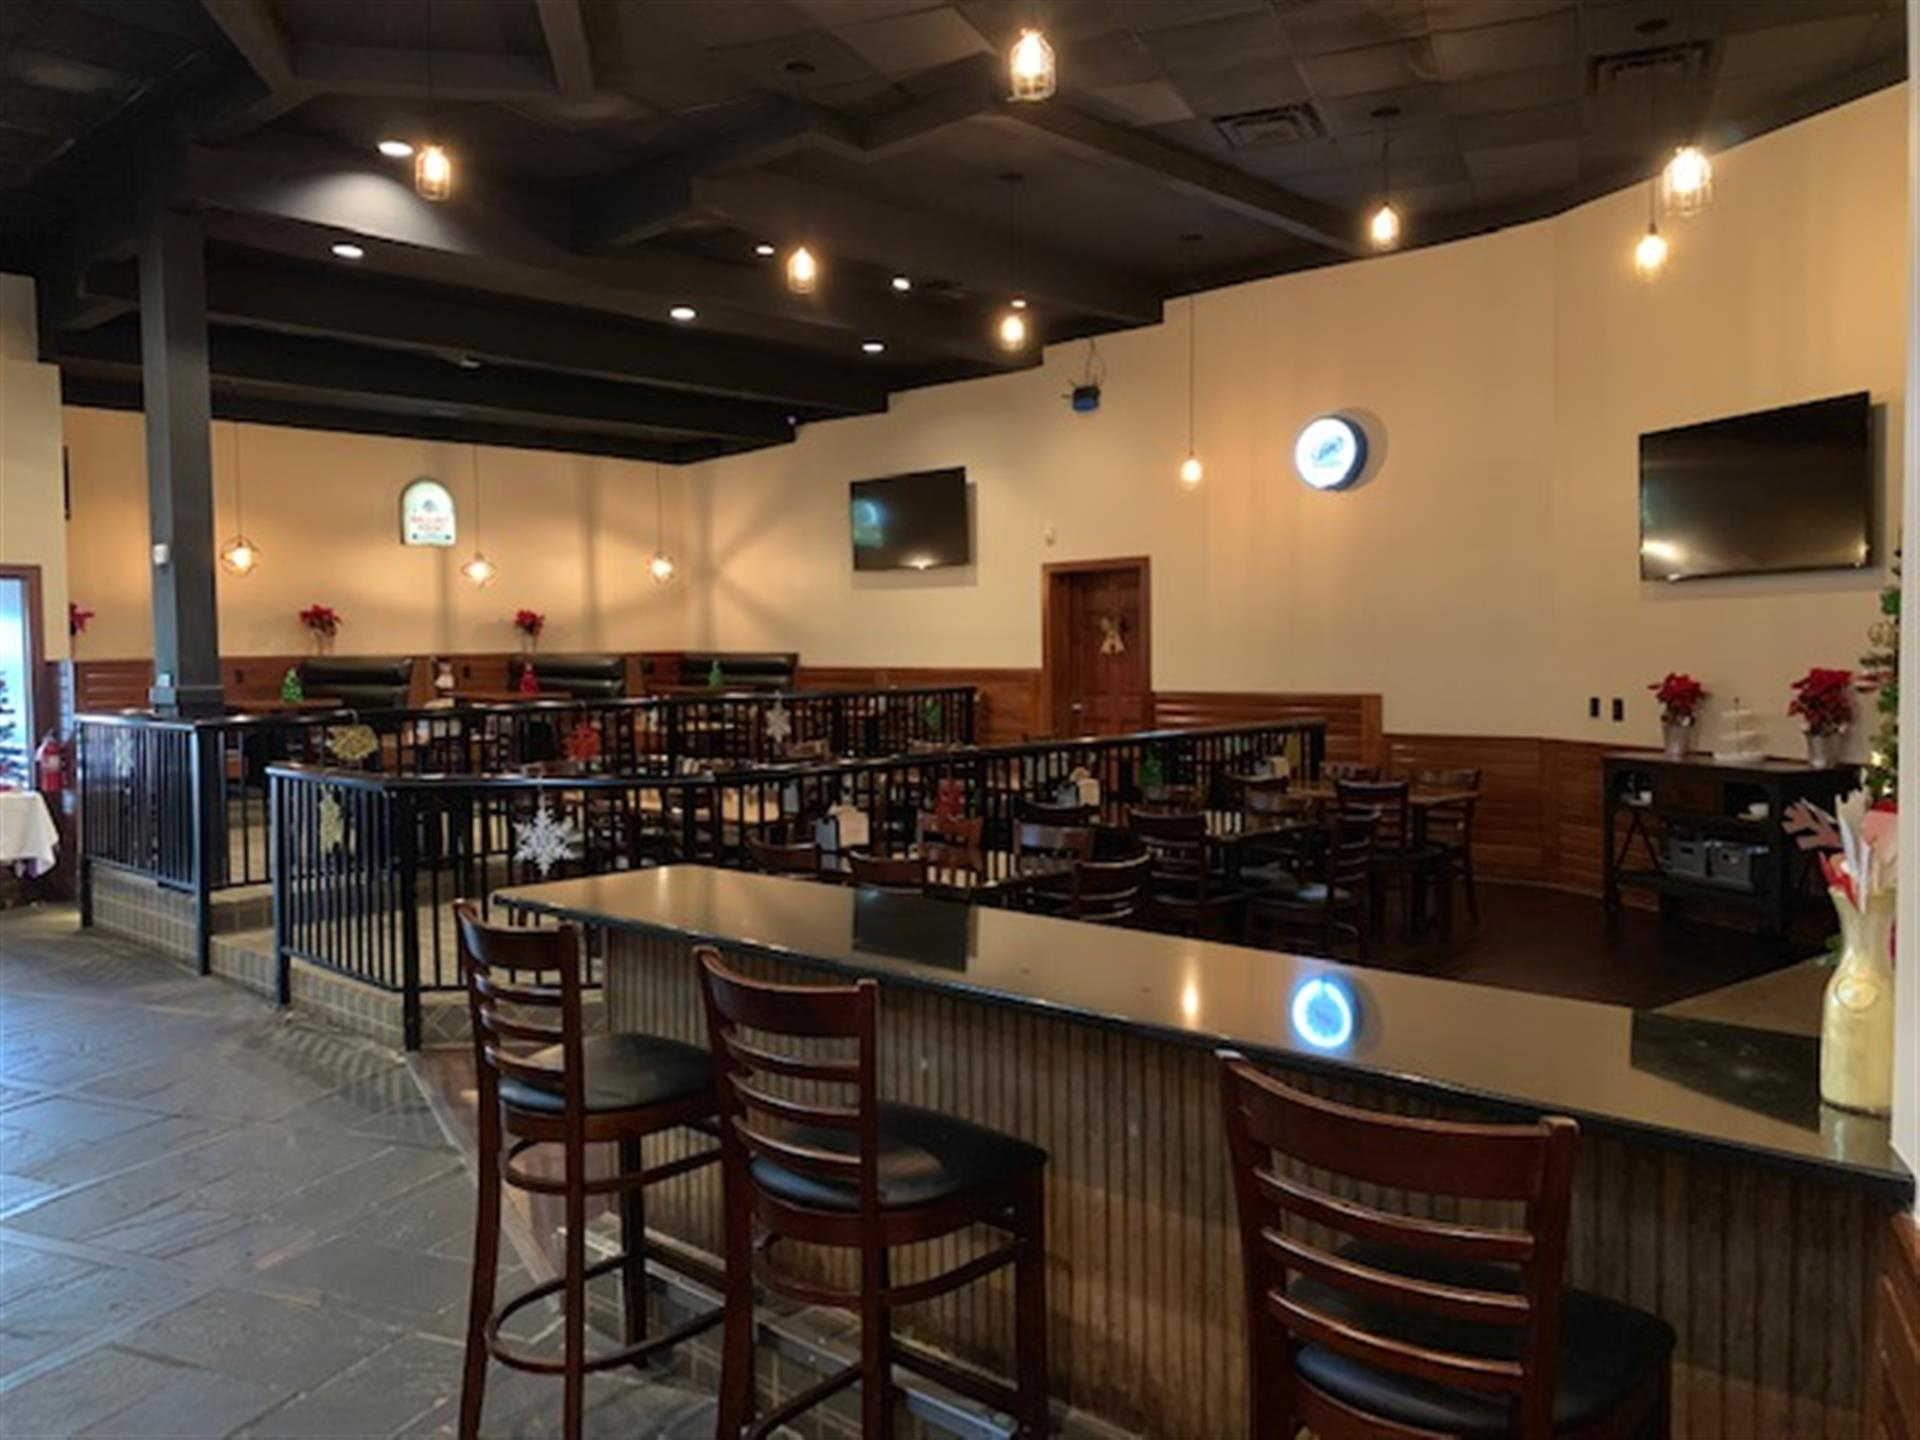 the bar area of the event space with three stools at the bar and the tables and chairs in the background with two flat screen tvs on the walls